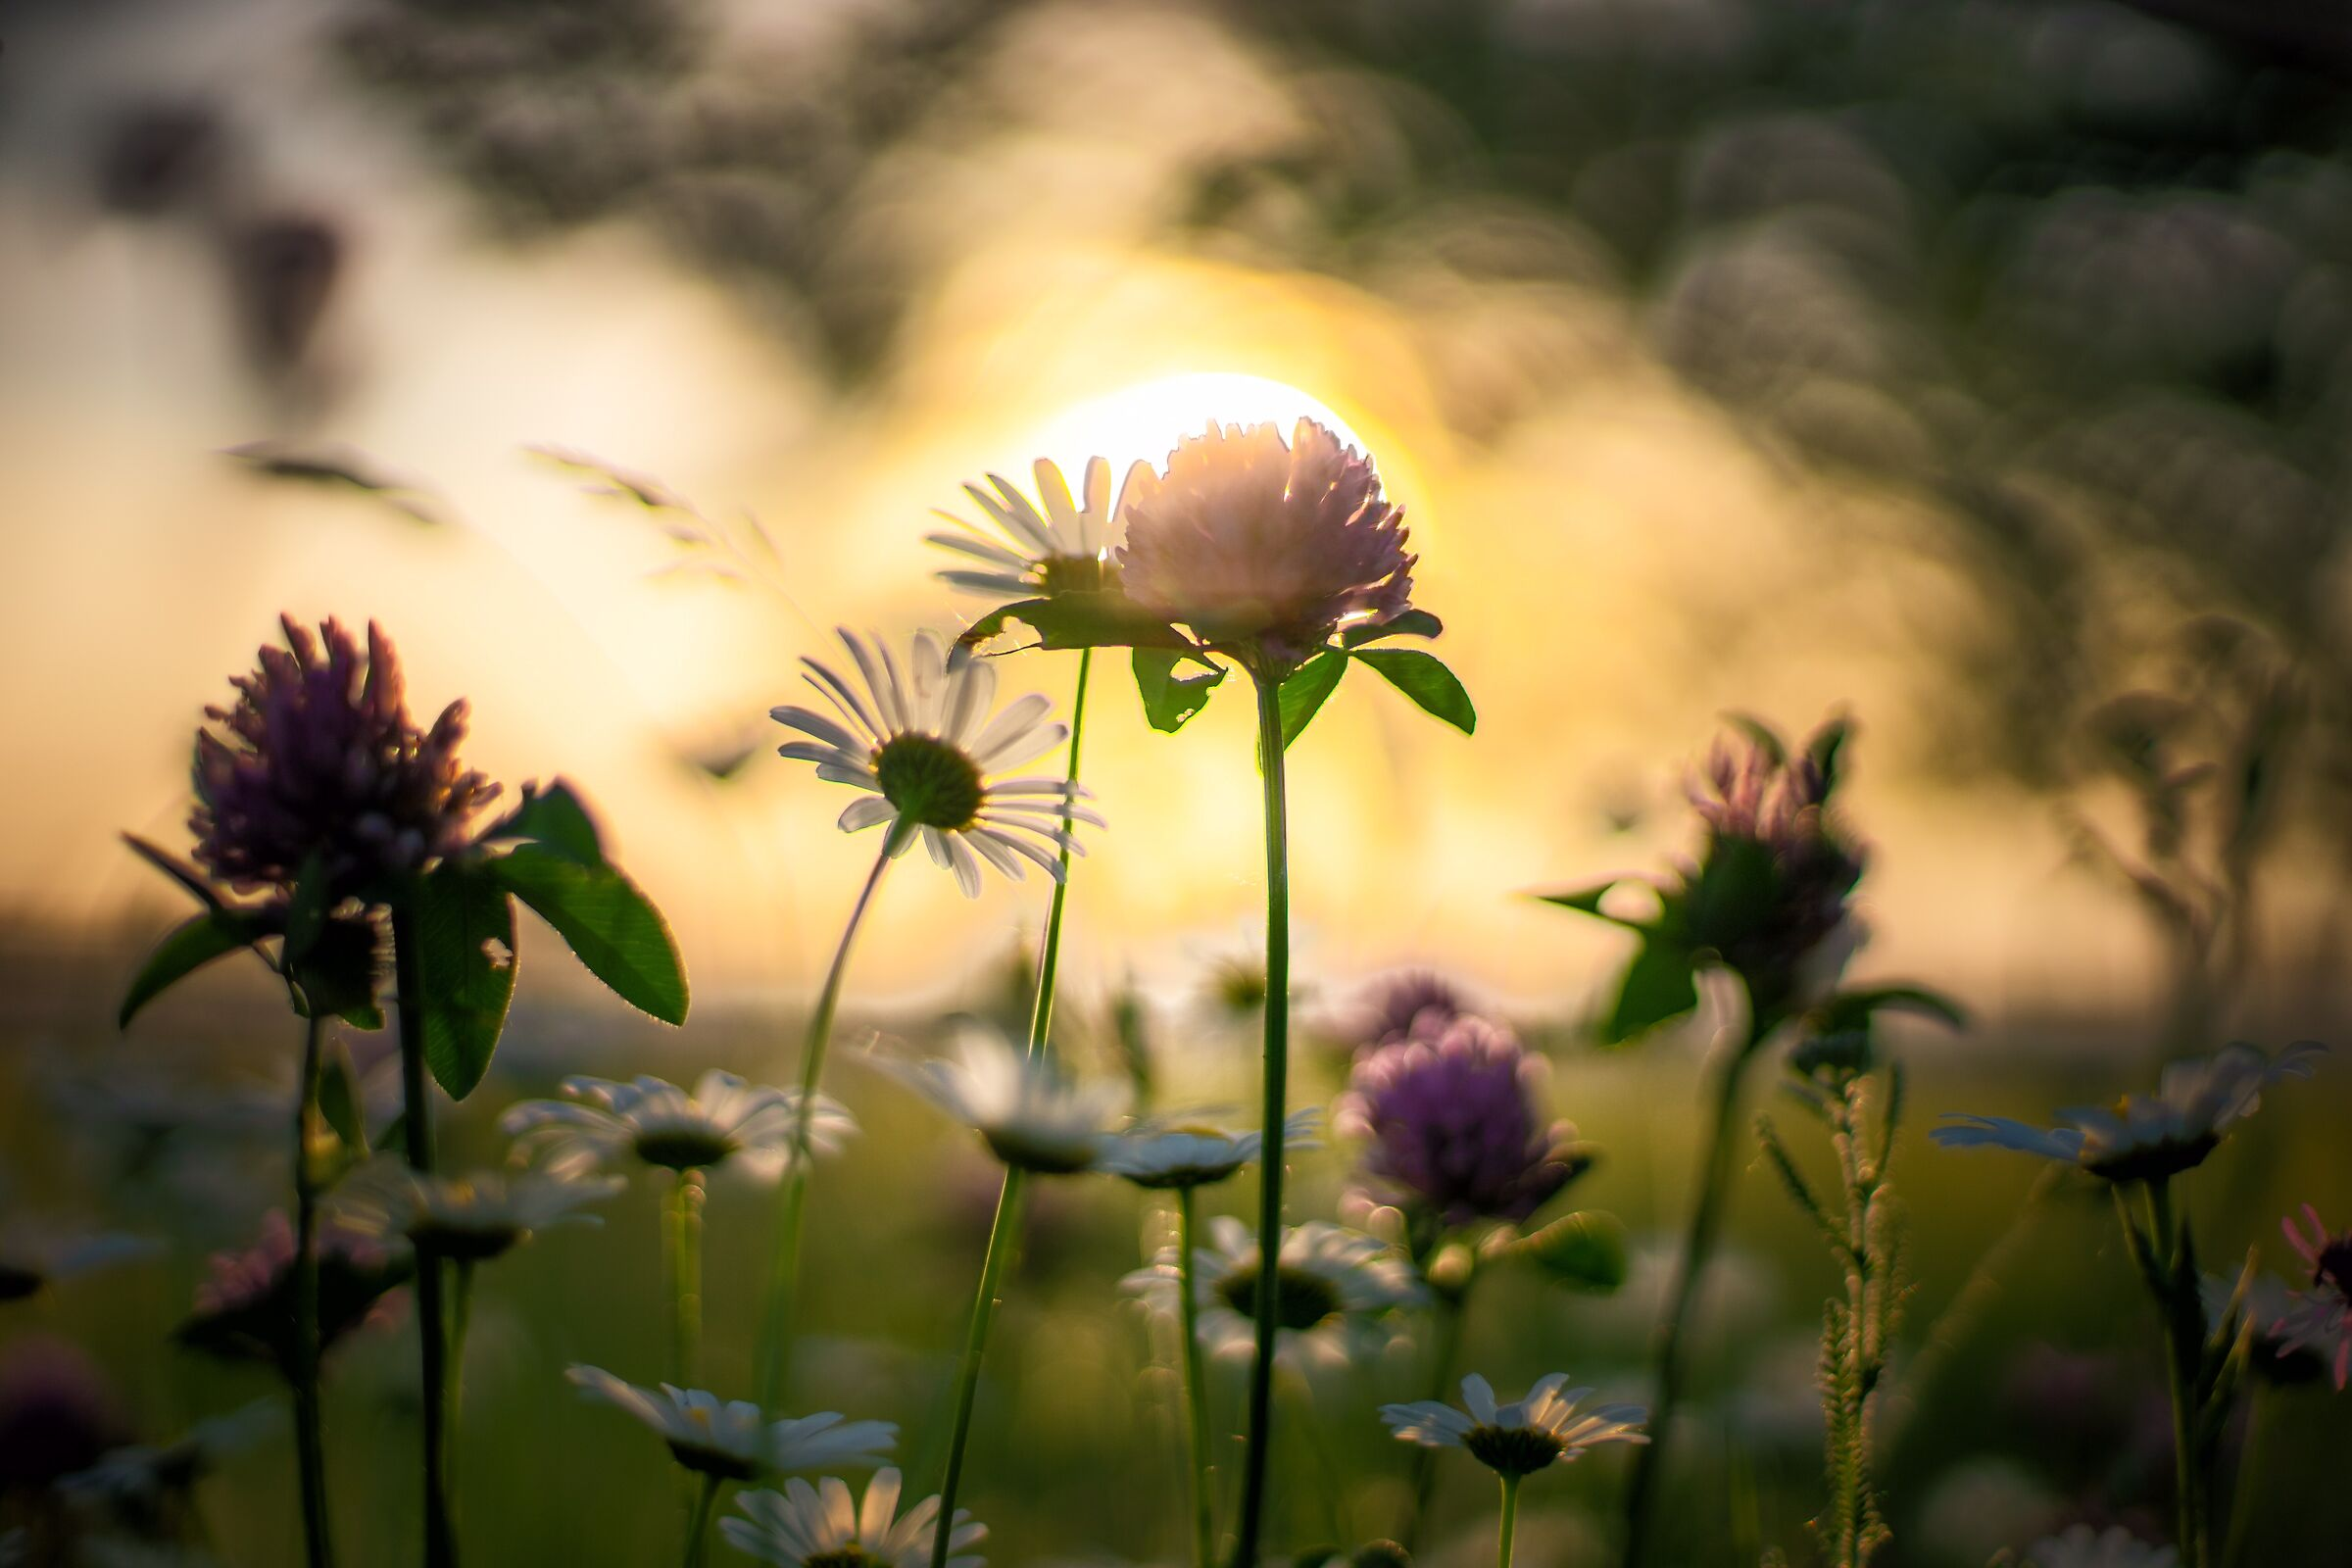 In the meadow, at sunset......